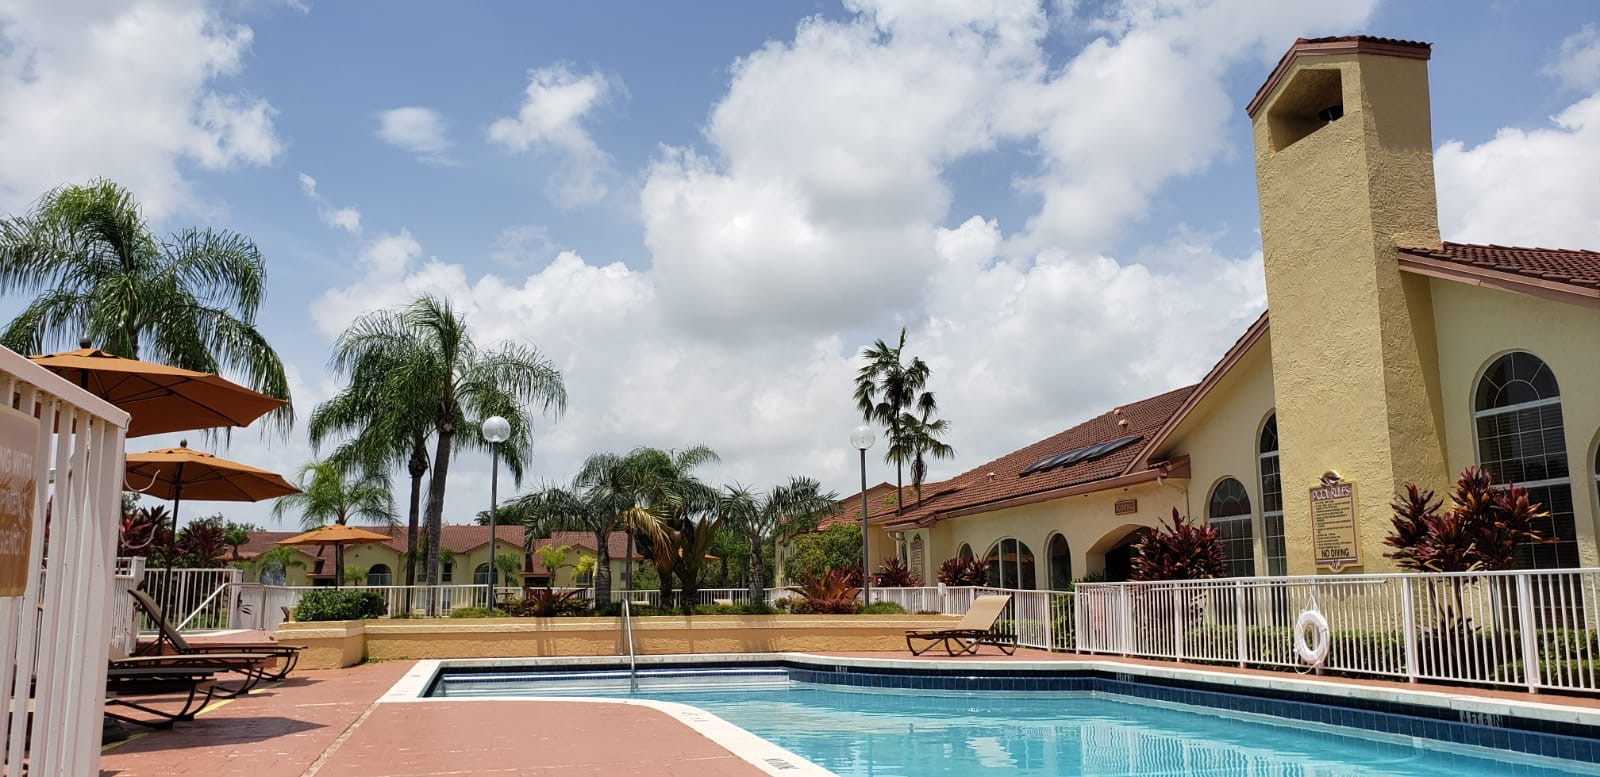 Apartments for Lease at Pepper Cove Apartments in Miami, FL